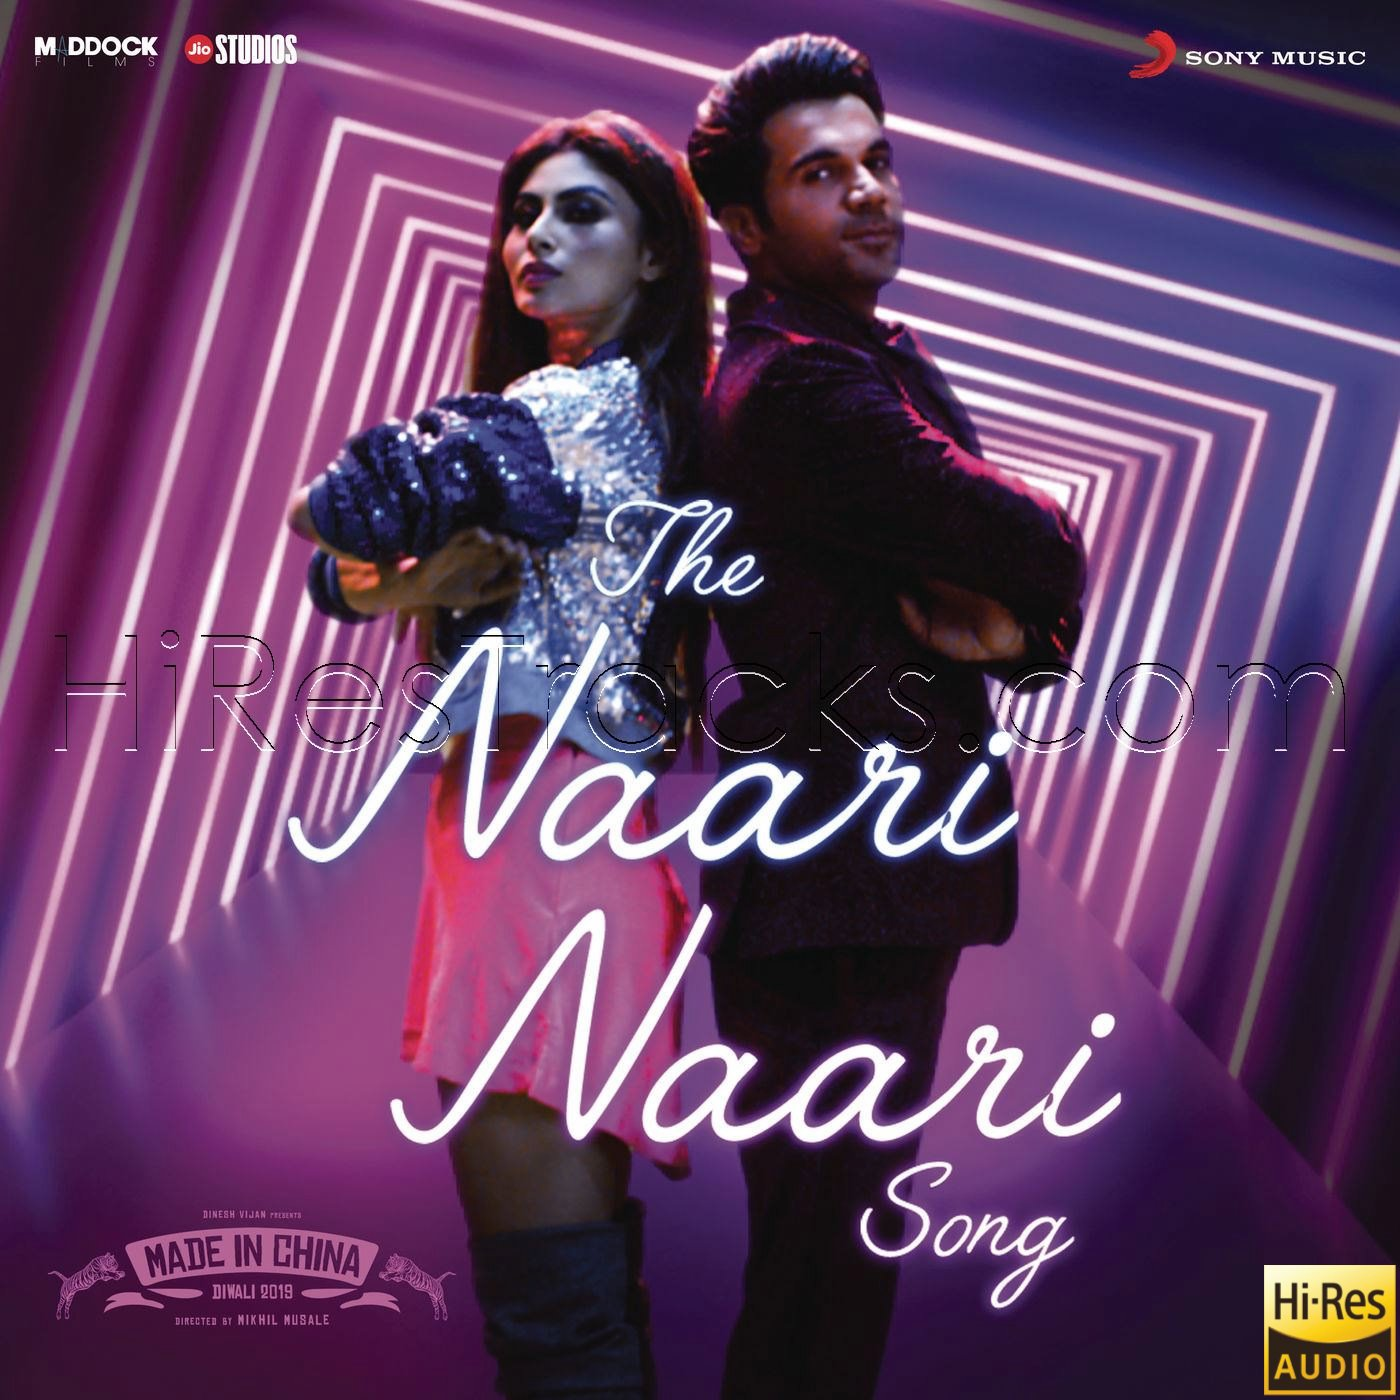 The Naari Naari Song (From Made in China) (2019) (Sachin-Jigar) (Sony Music) [24 BIT – 96 KHZ] [Digital-RIP-FLAC]